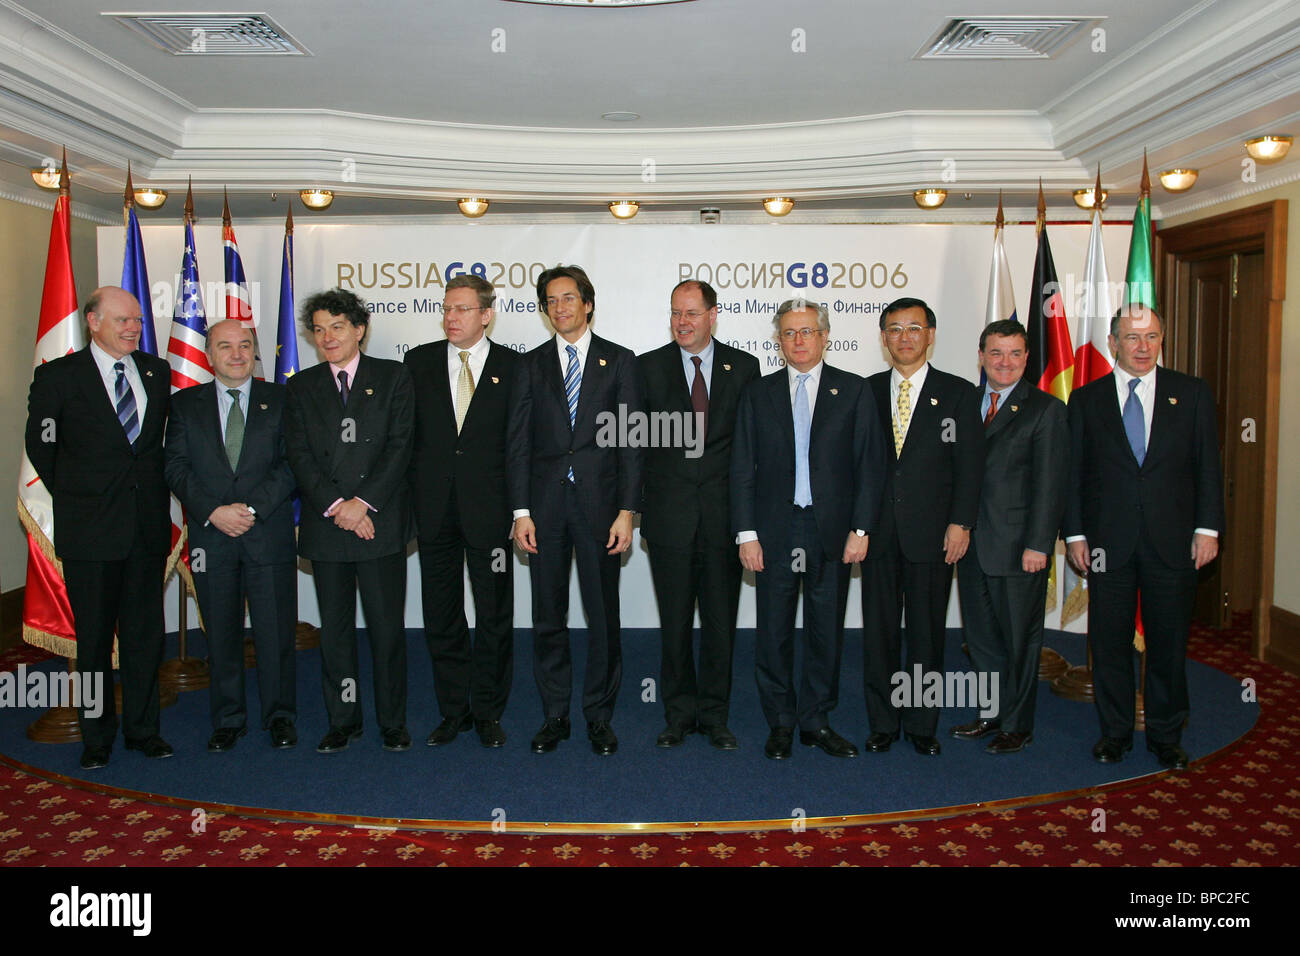 Moscow hosts G8 ministerial meeting - Stock Image